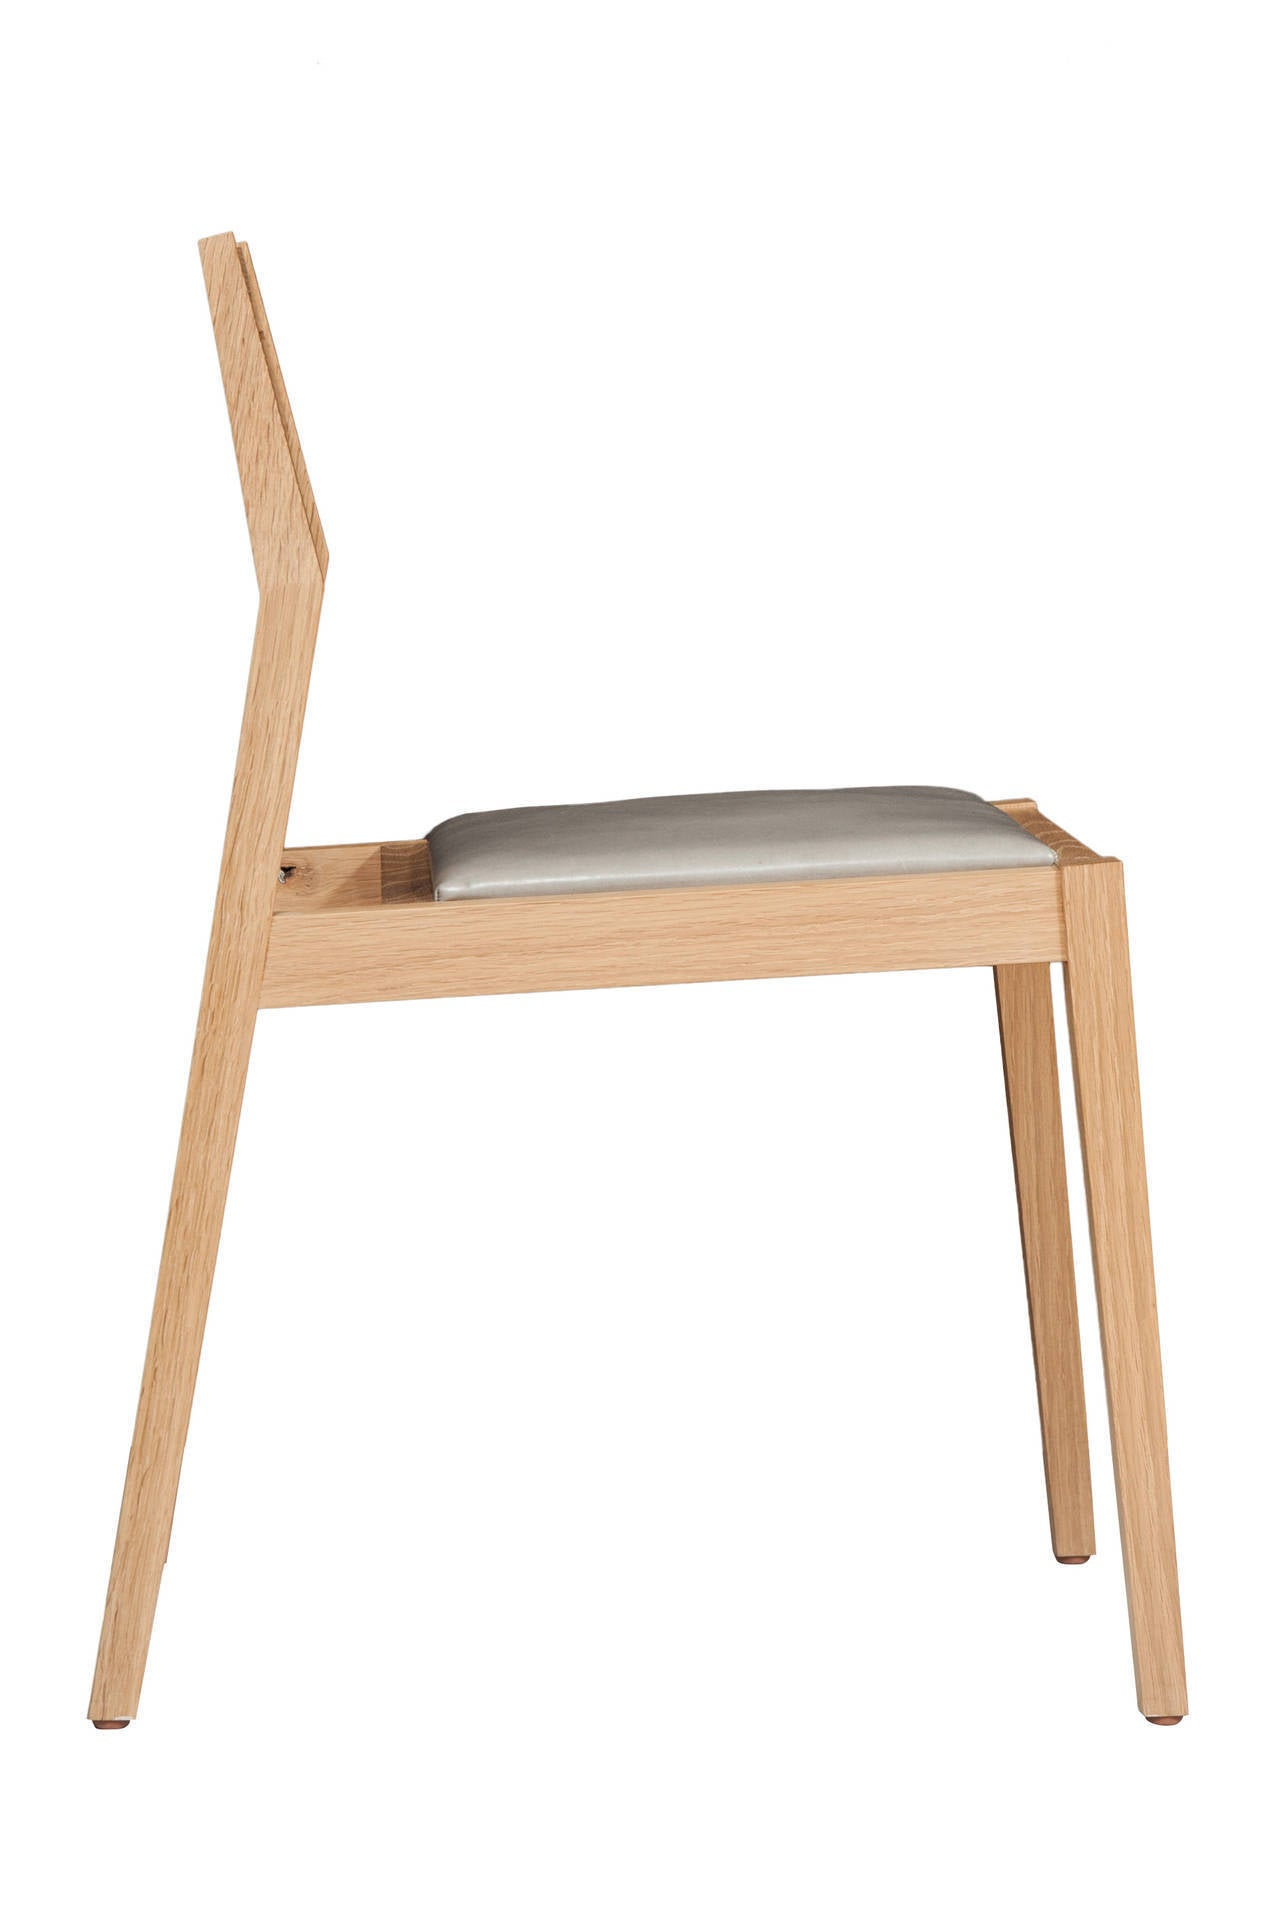 oak and white dining chairs swing chair stand stillmade solid with leather seat